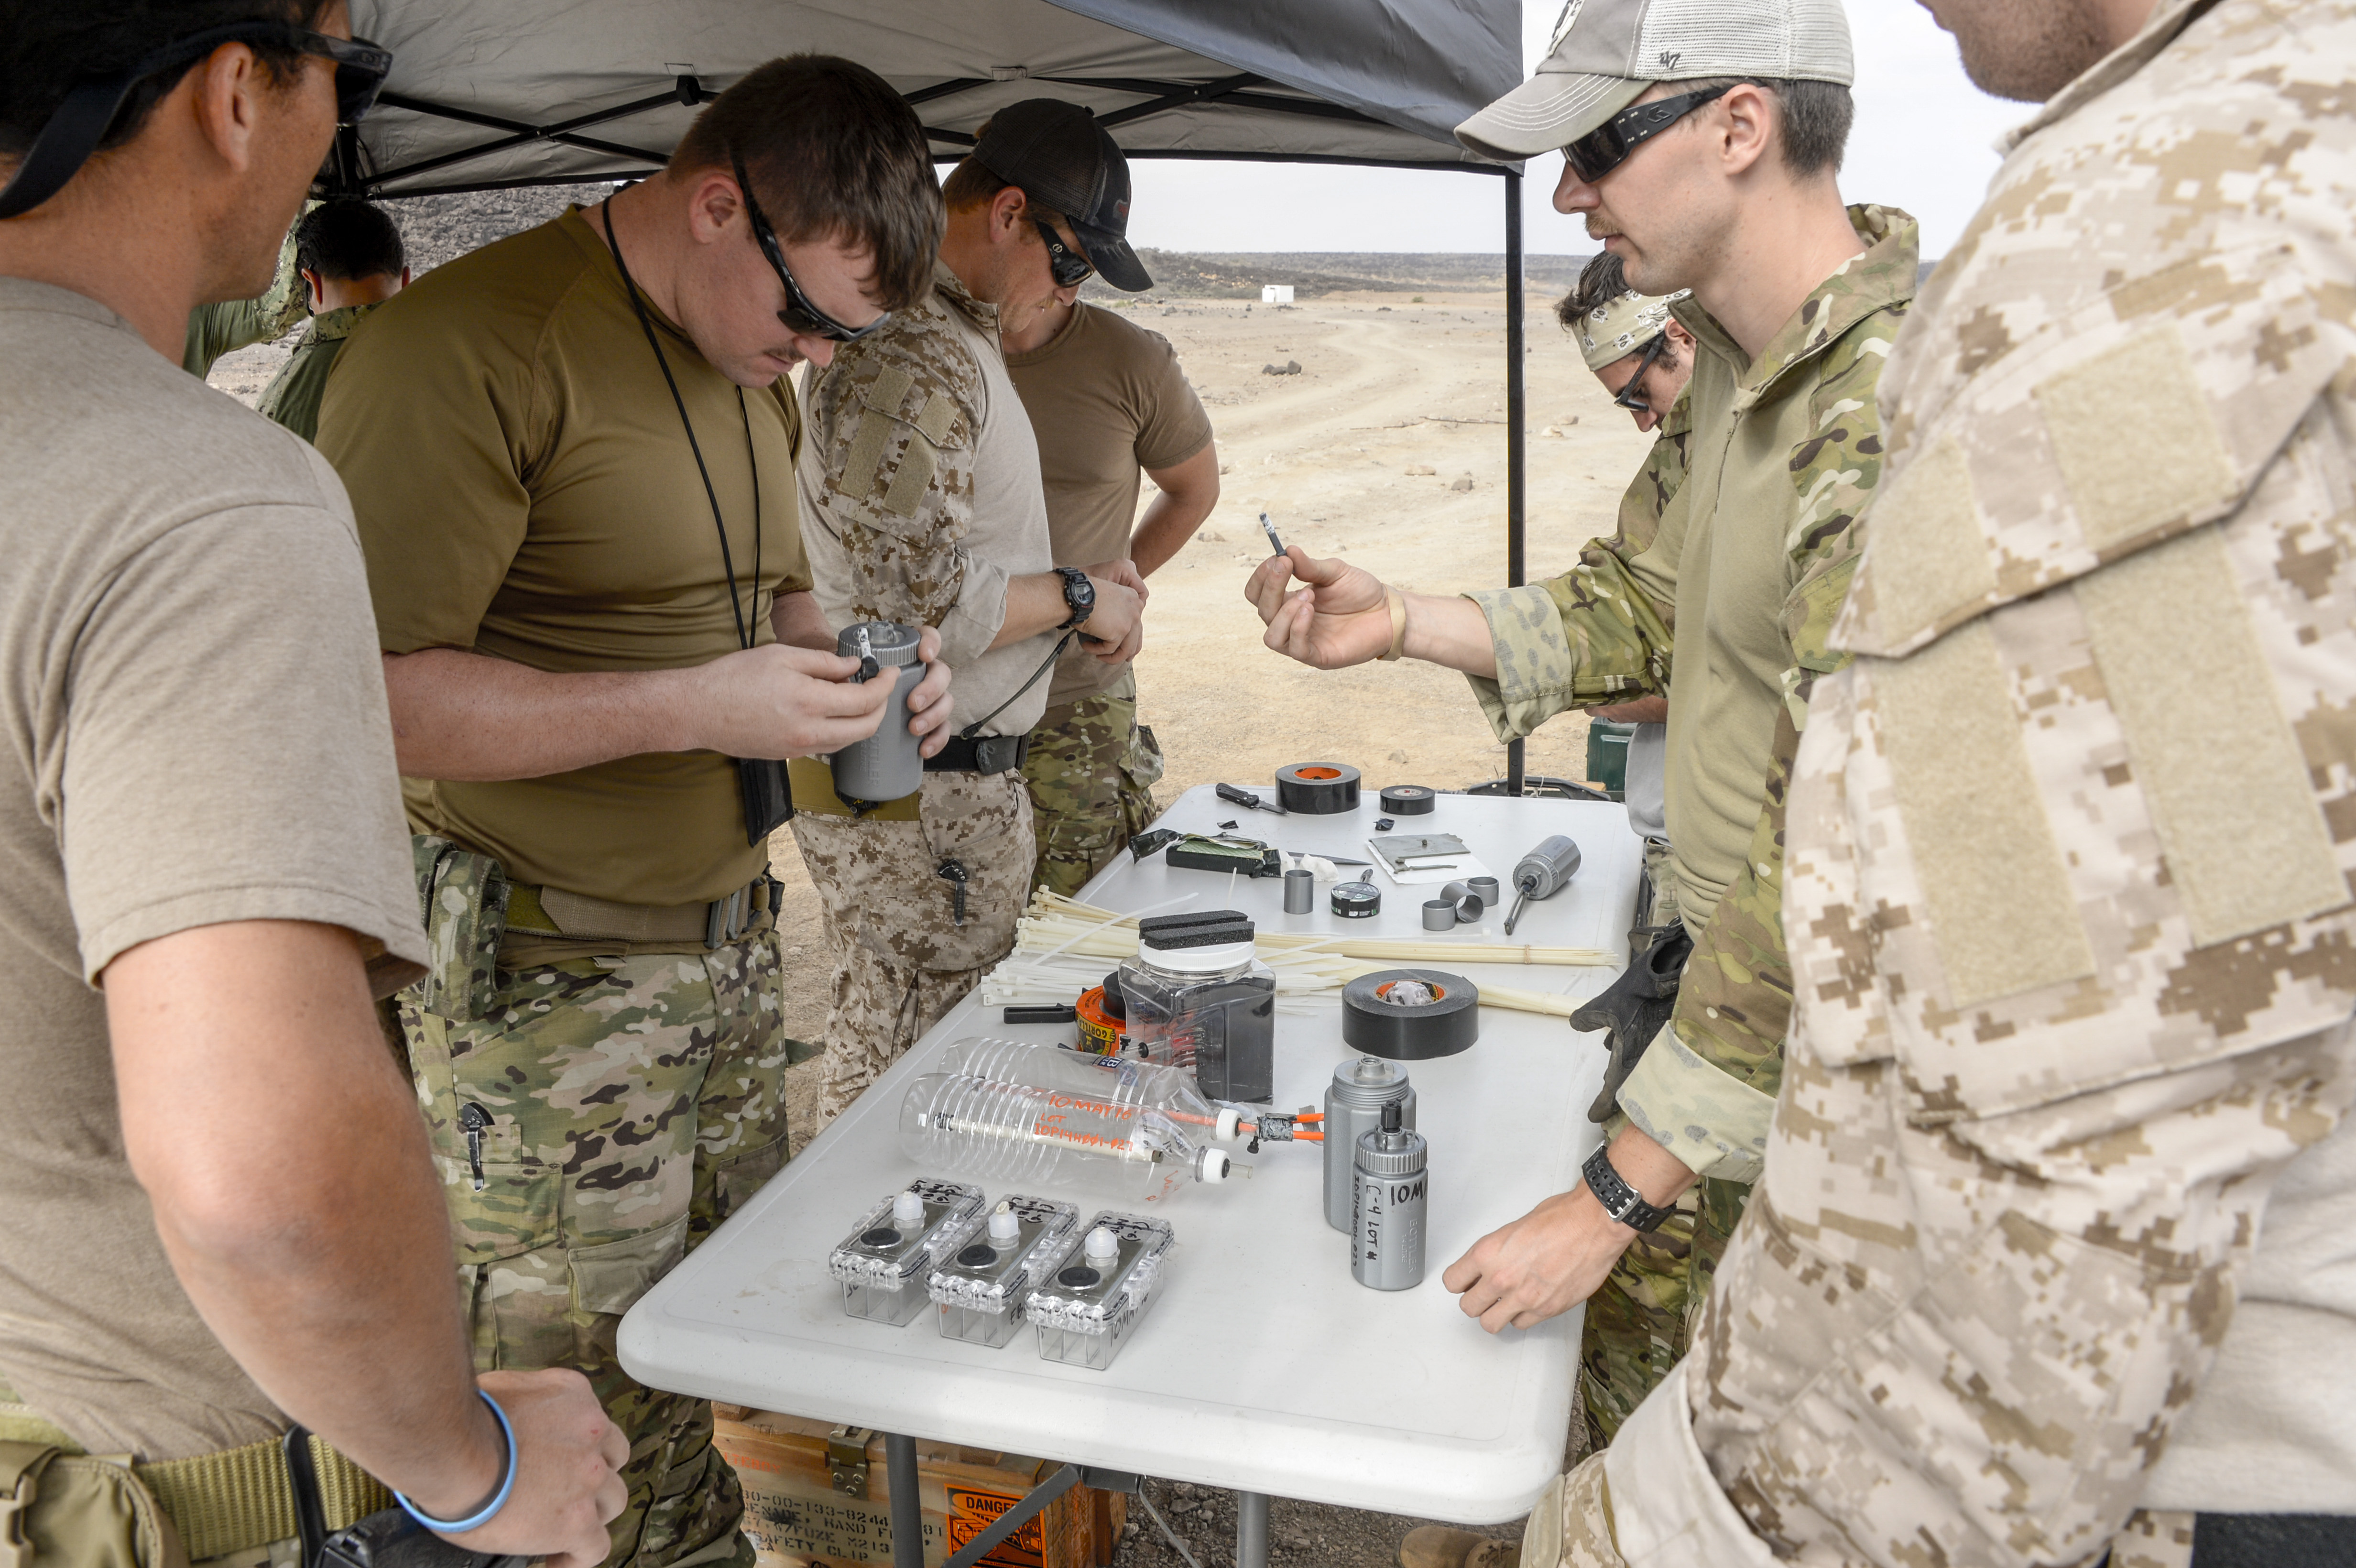 U.S. Navy Sailors of Combined Joint Task Force Horn of Africa Explosive Ordnance Disposal (EOD) members, construct explosive tools such as fluid blade disruptors and devices for training purposes at Arta Plage, Djibouti, Jan. 30, 2017. EOD teams use fluid blade disruptors to penetrate harden locations with a directed explosion. (U.S. Air National Guard photo by Staff Sgt. Christian Jadot)